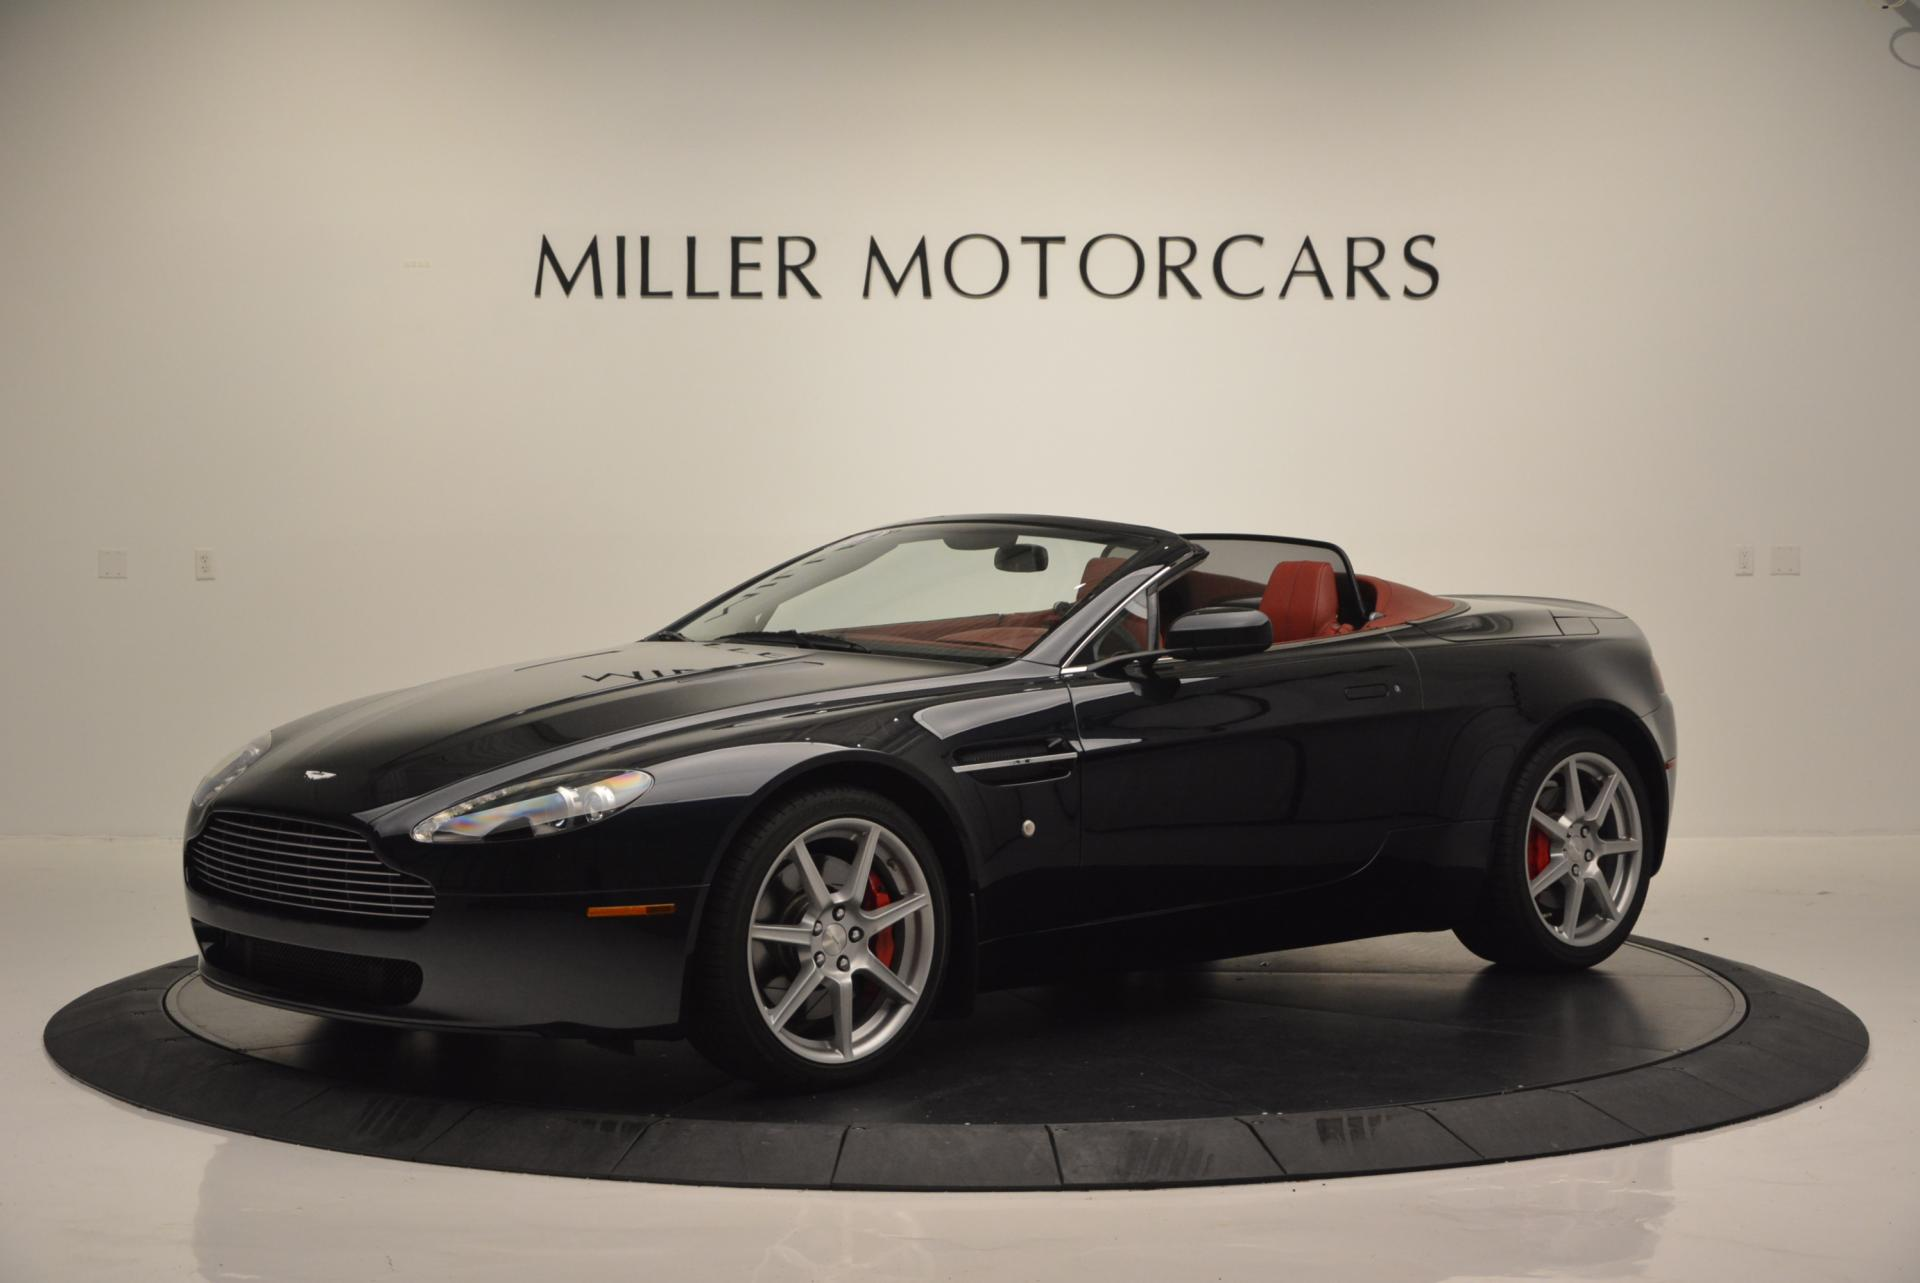 Pre Owned 2008 Aston Martin V8 Vantage Roadster For Sale Miller Motorcars Stock 7038